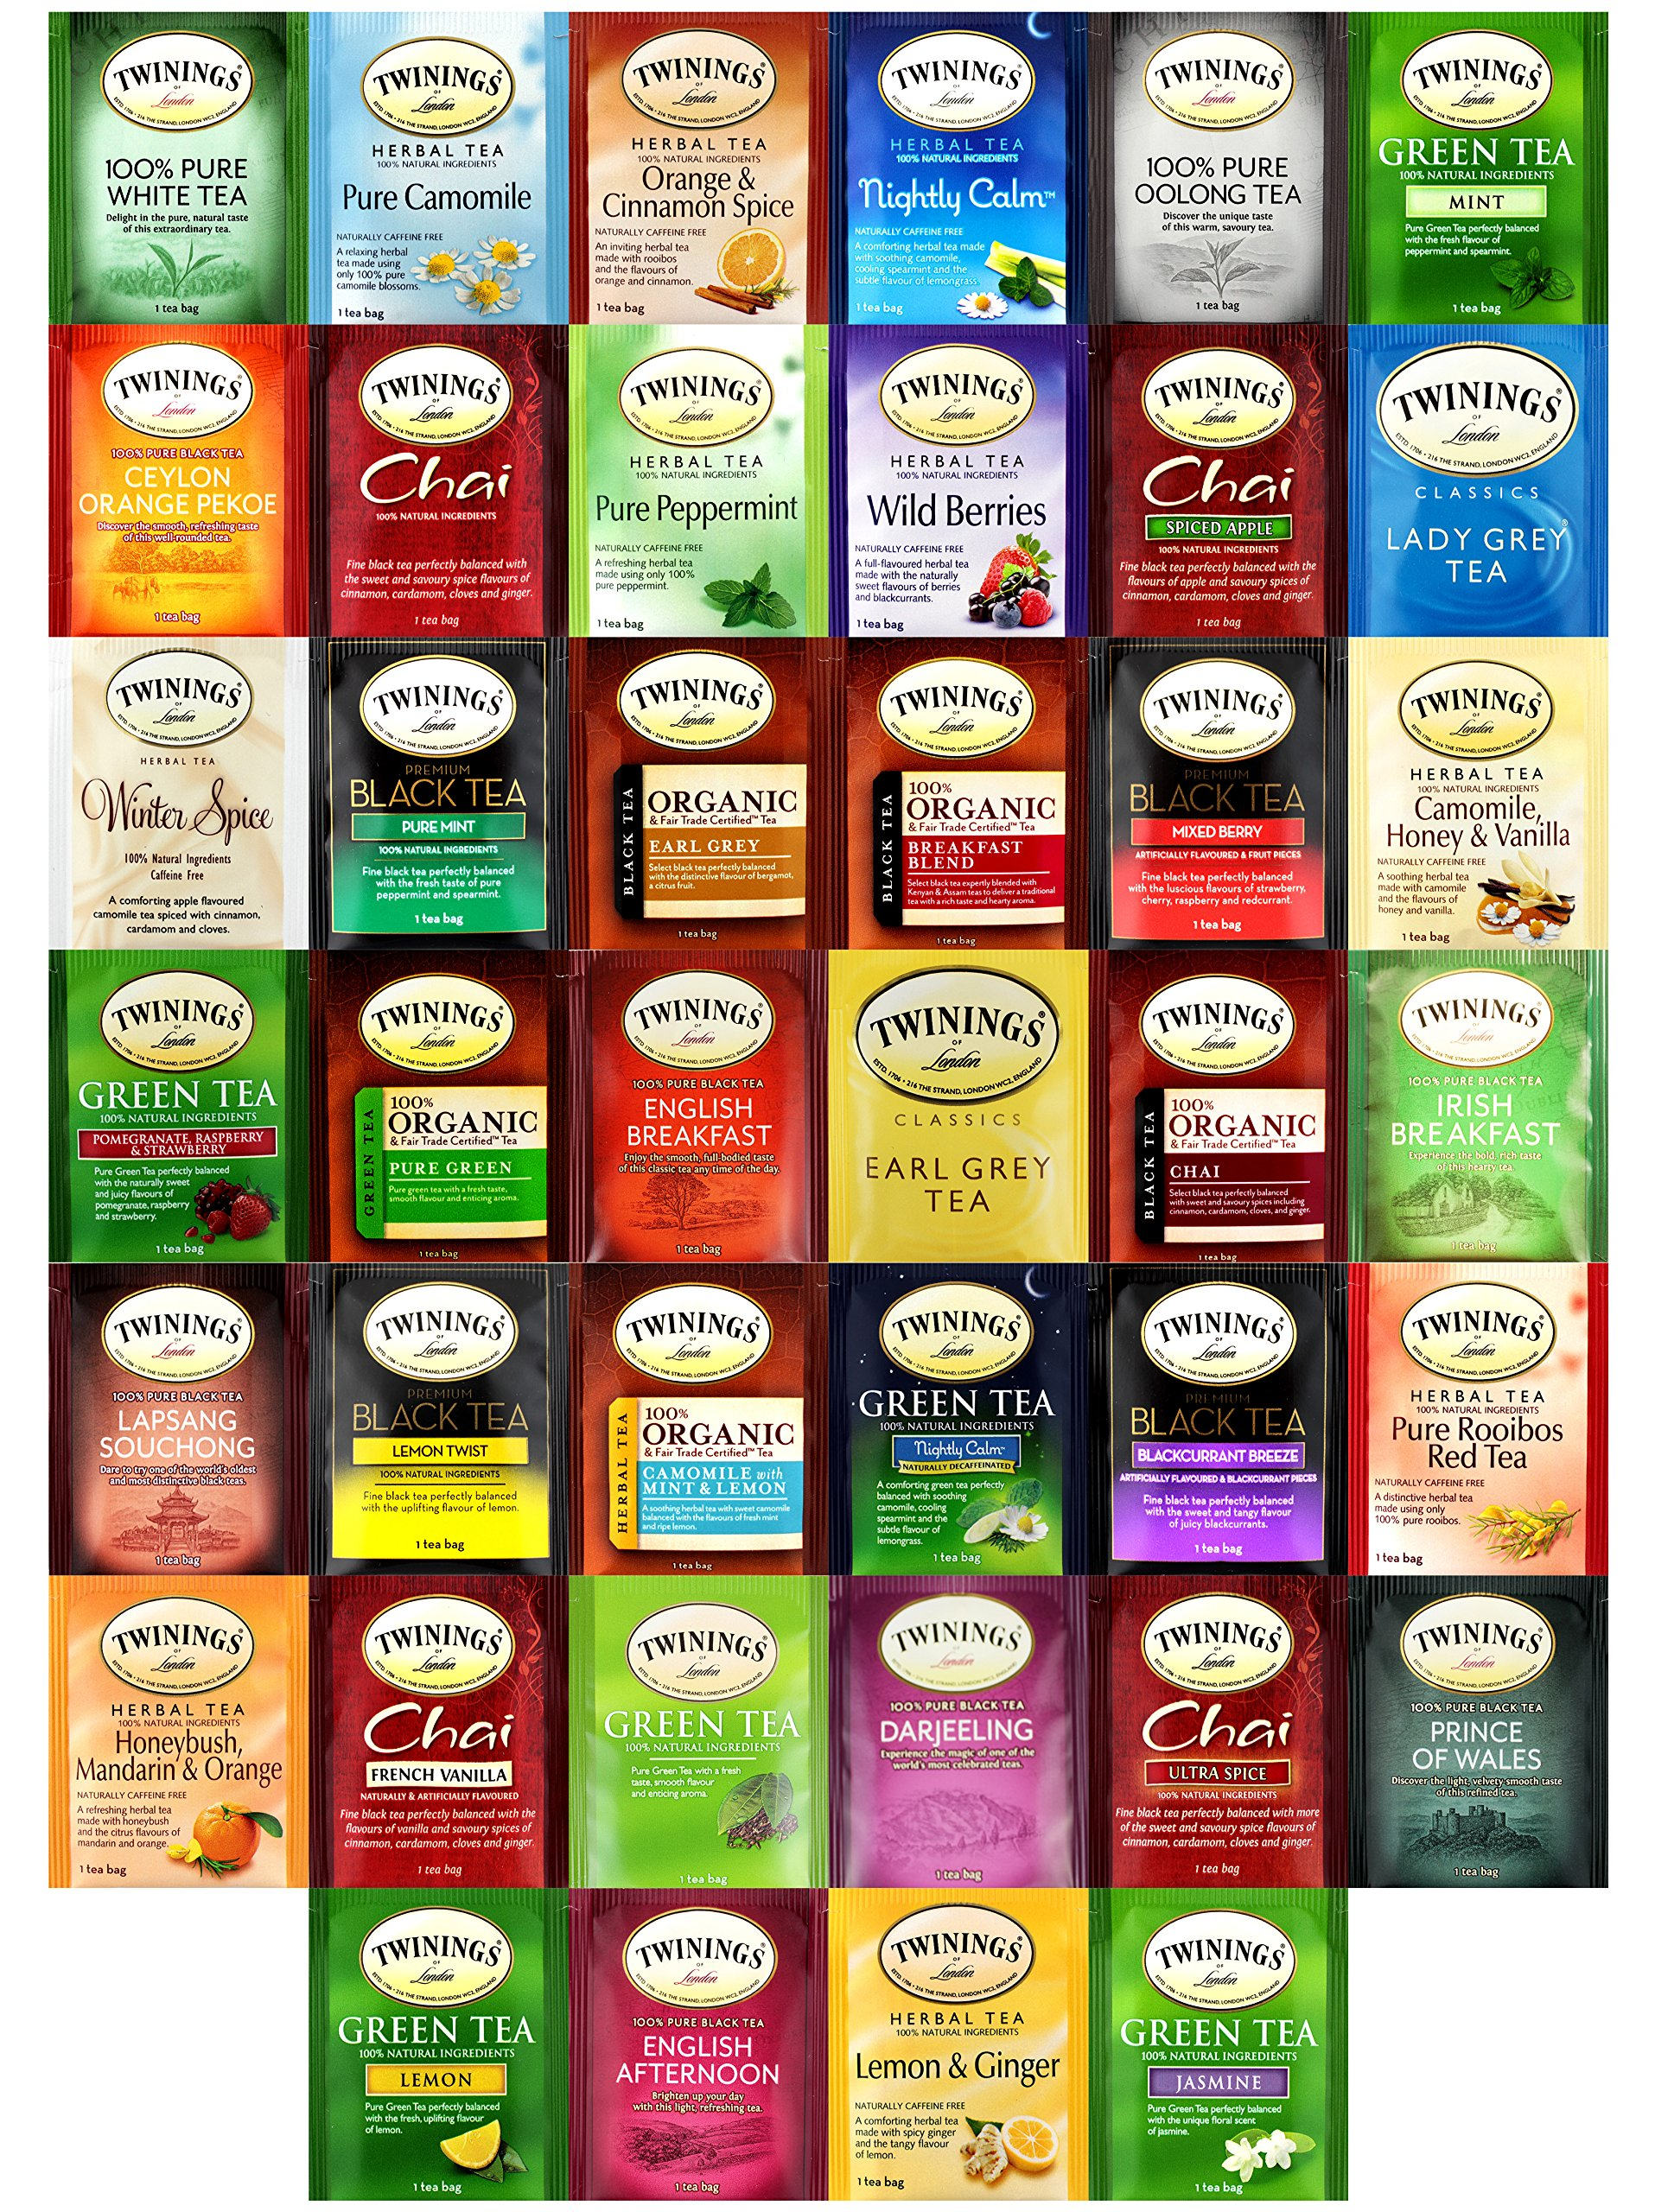 Twinings Tea Bags Assortment Includes Mints by Variety Fun (120 Count)